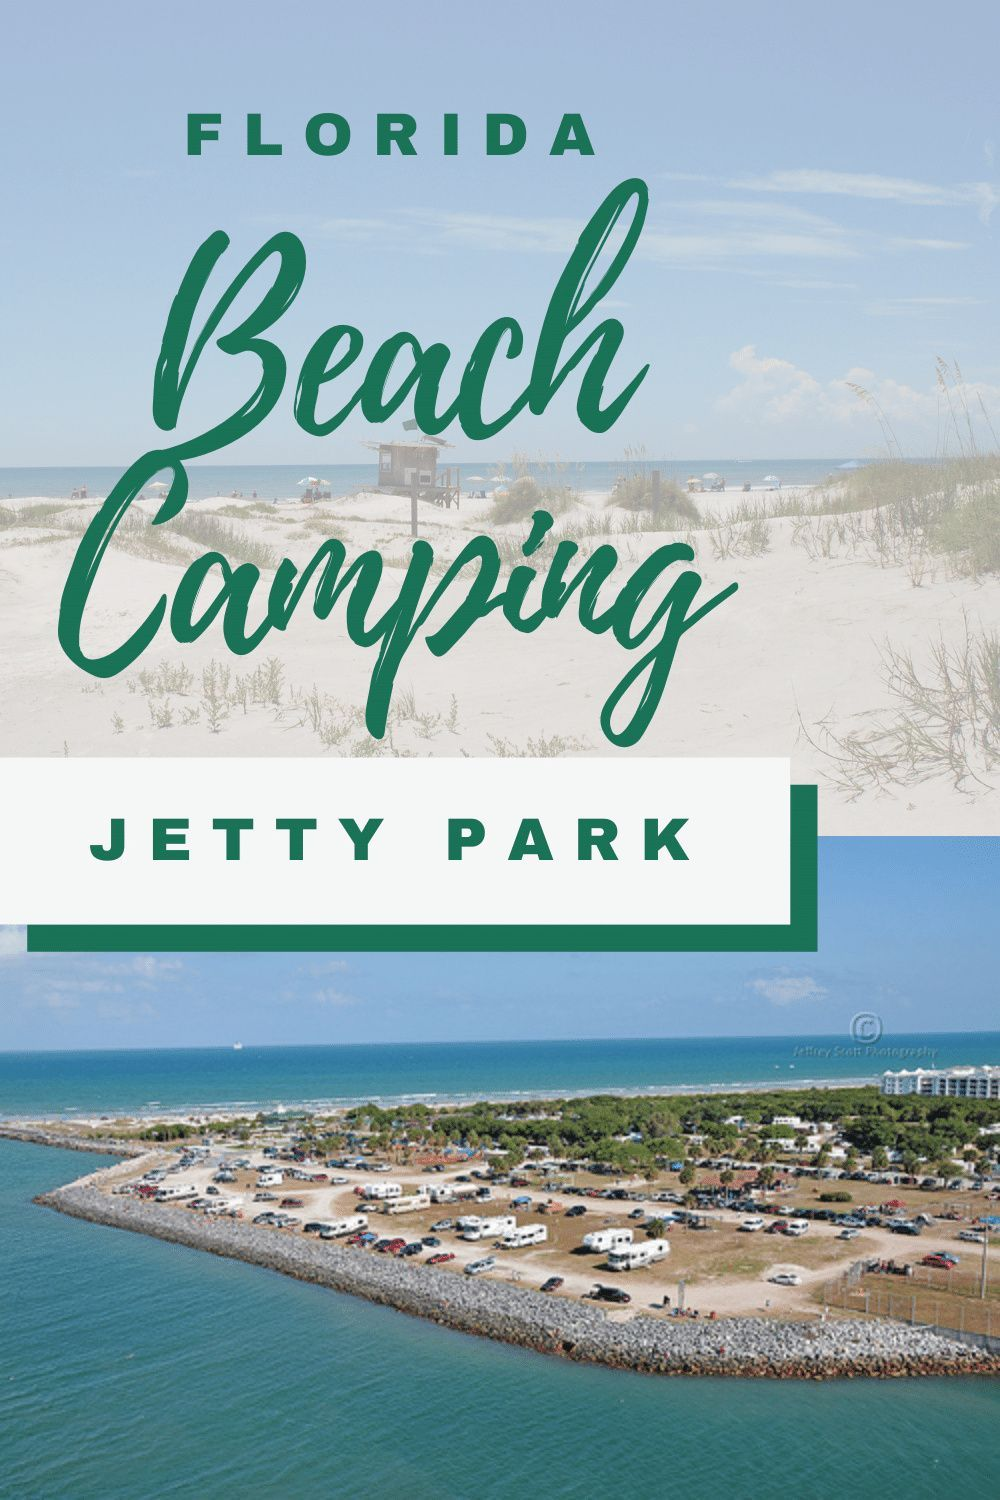 Beach Camping 5 Of Central Florida S Best Beach Campgrounds Beach Camping Beach Vacation Spots Florida Camping